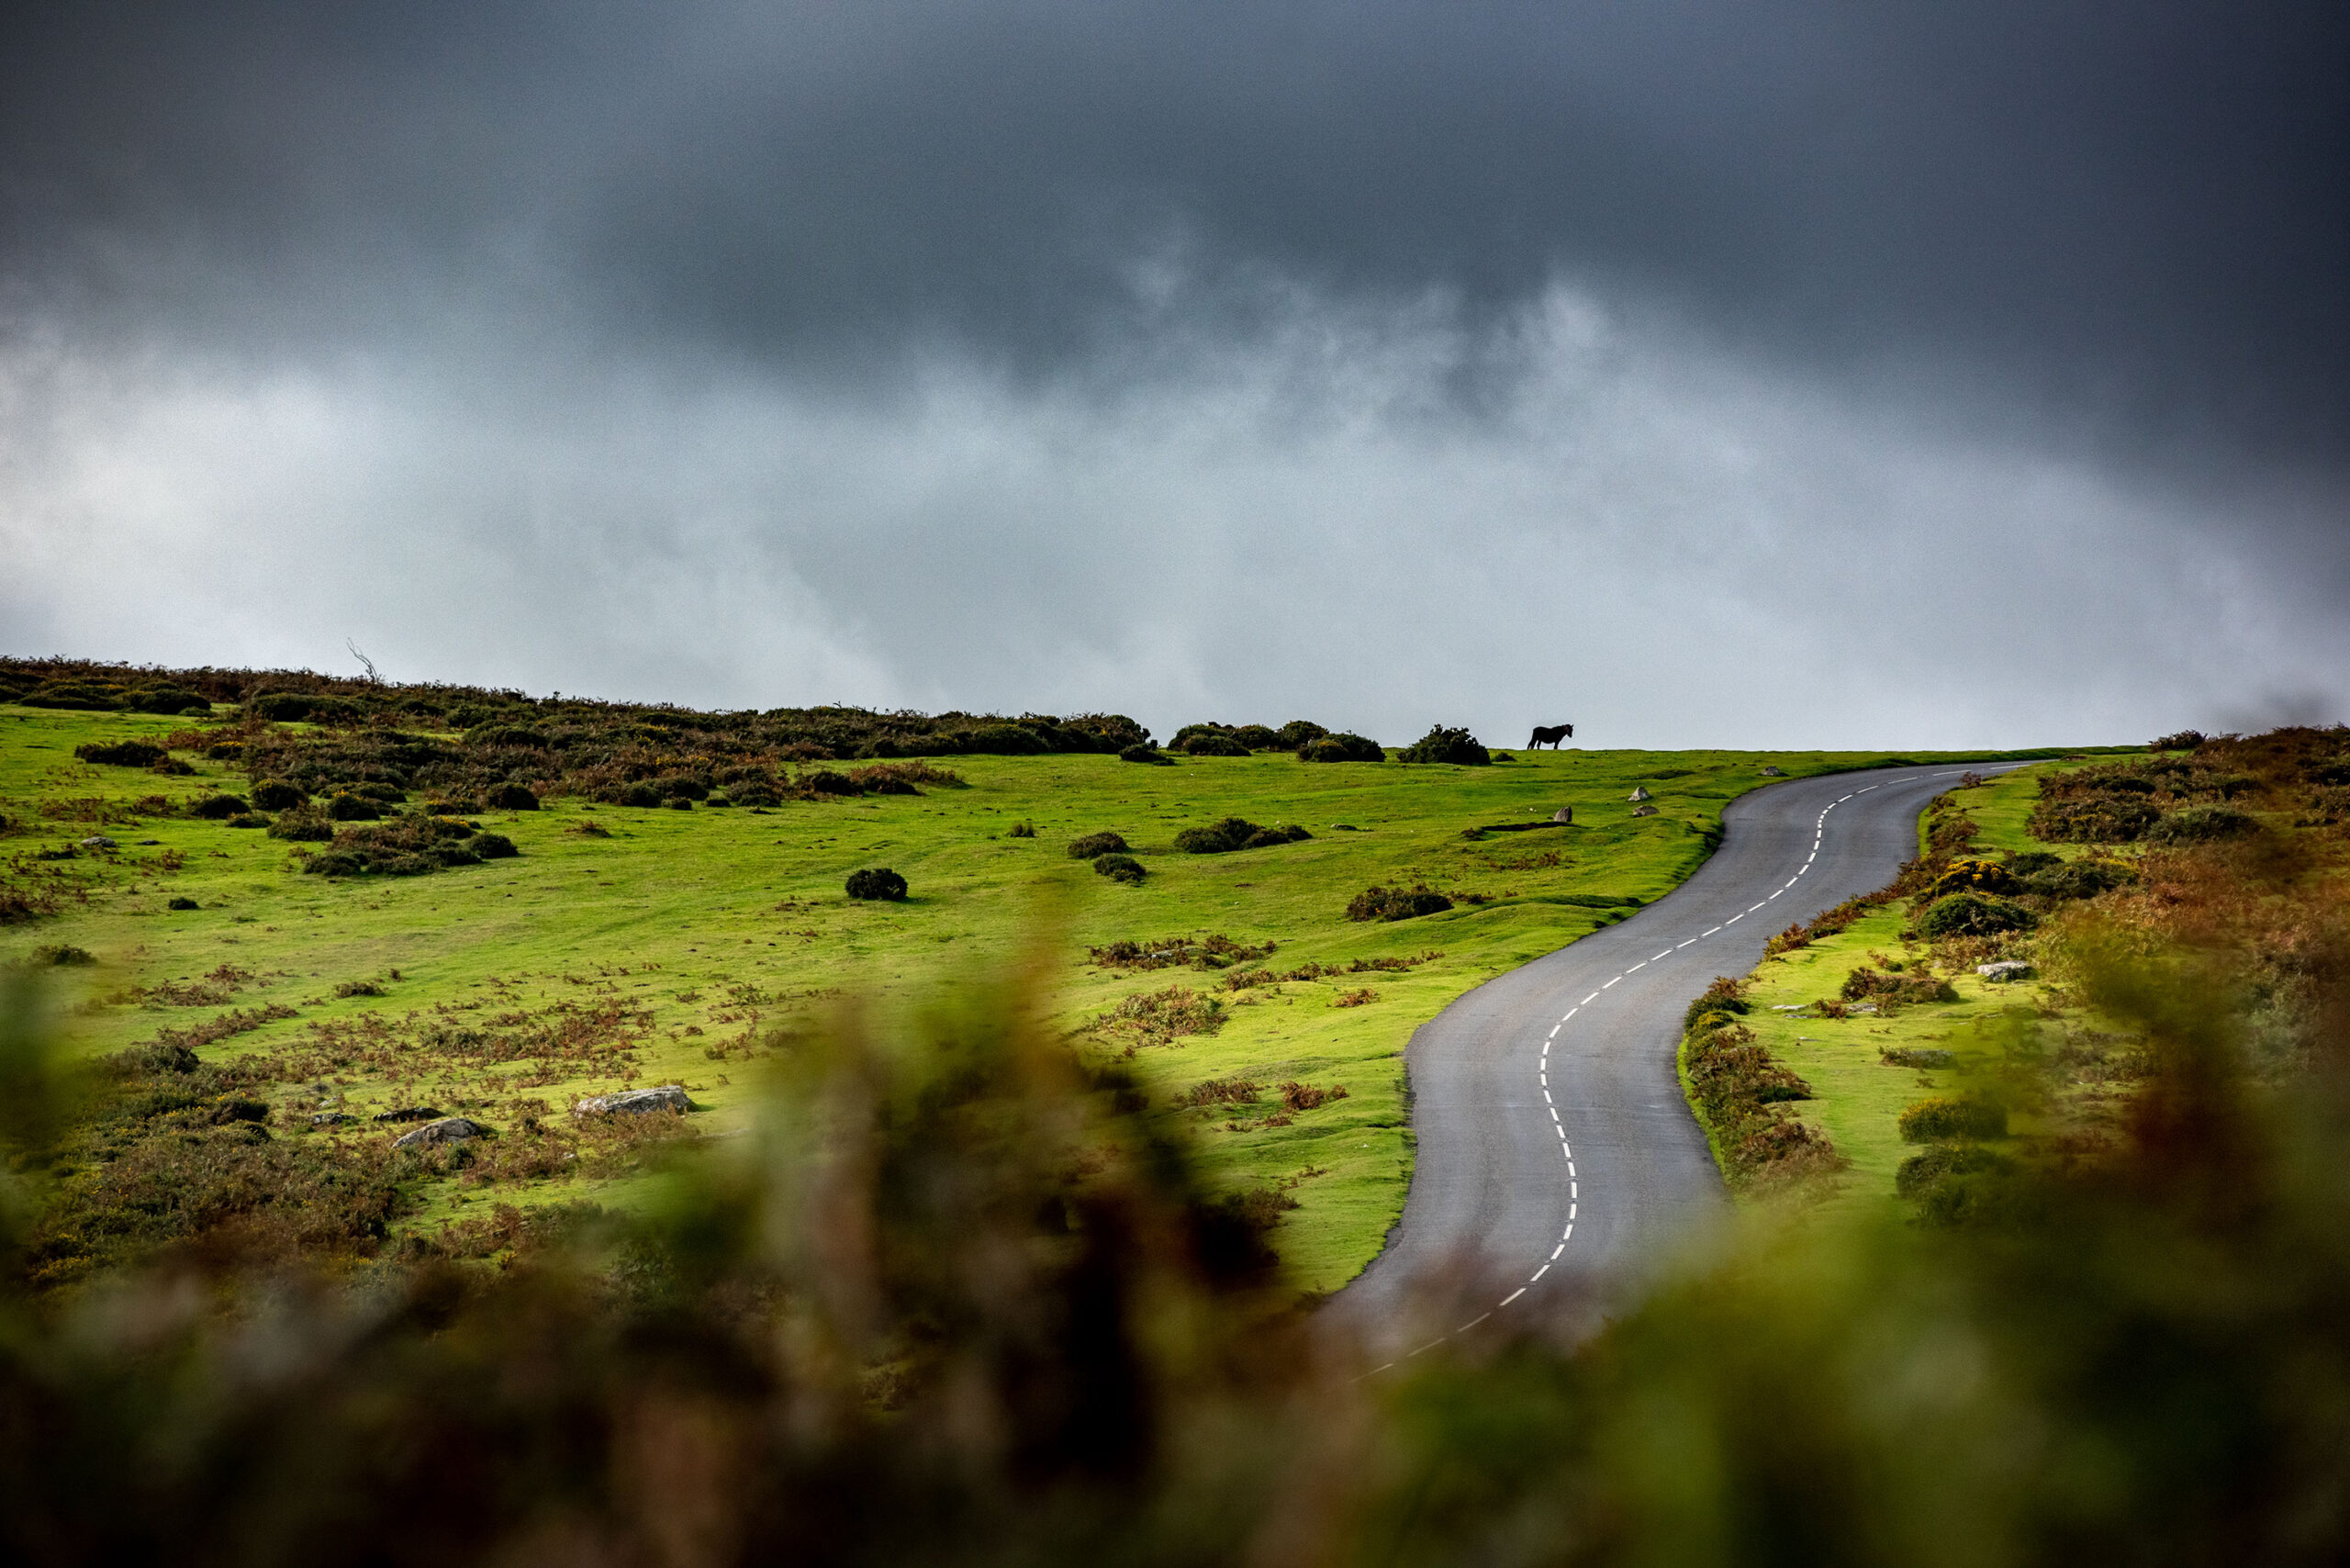 Dramatic and moody photography of a road crossing the Dartmoor. Image by Jennifer Esseiva.